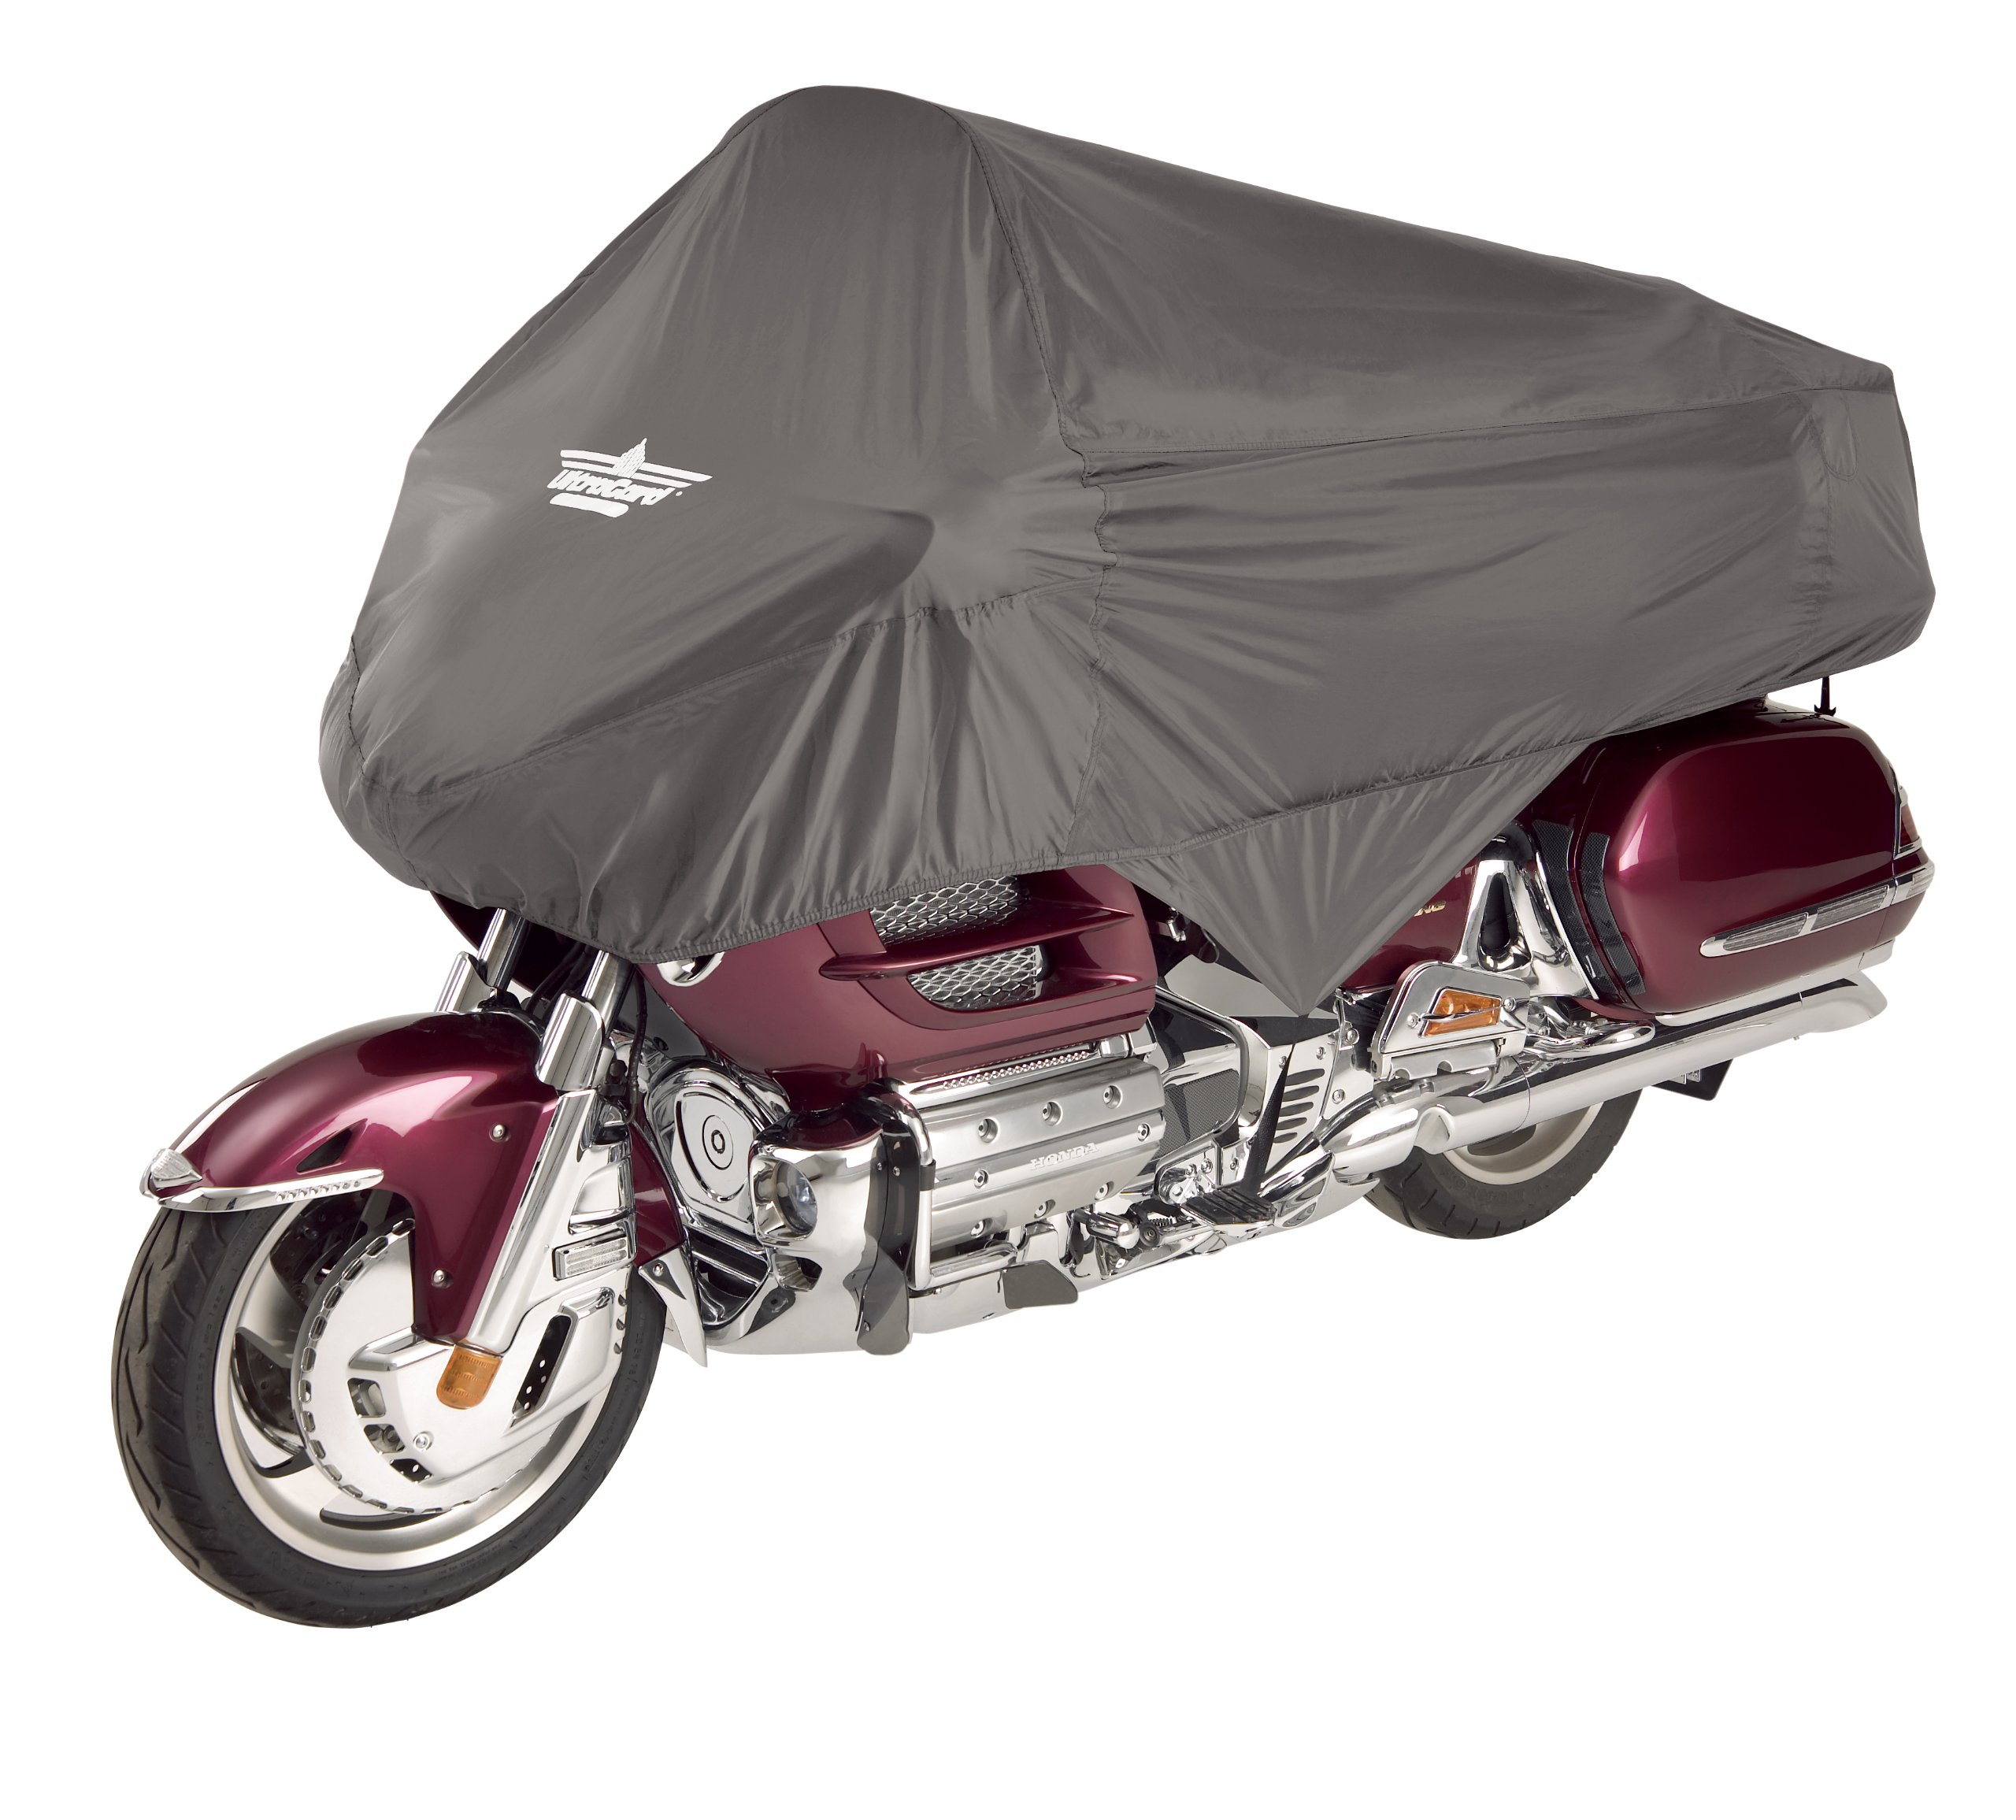 UltraGard 4-458G Charcoal Touring Motorcycle Half Cover by Ultragard